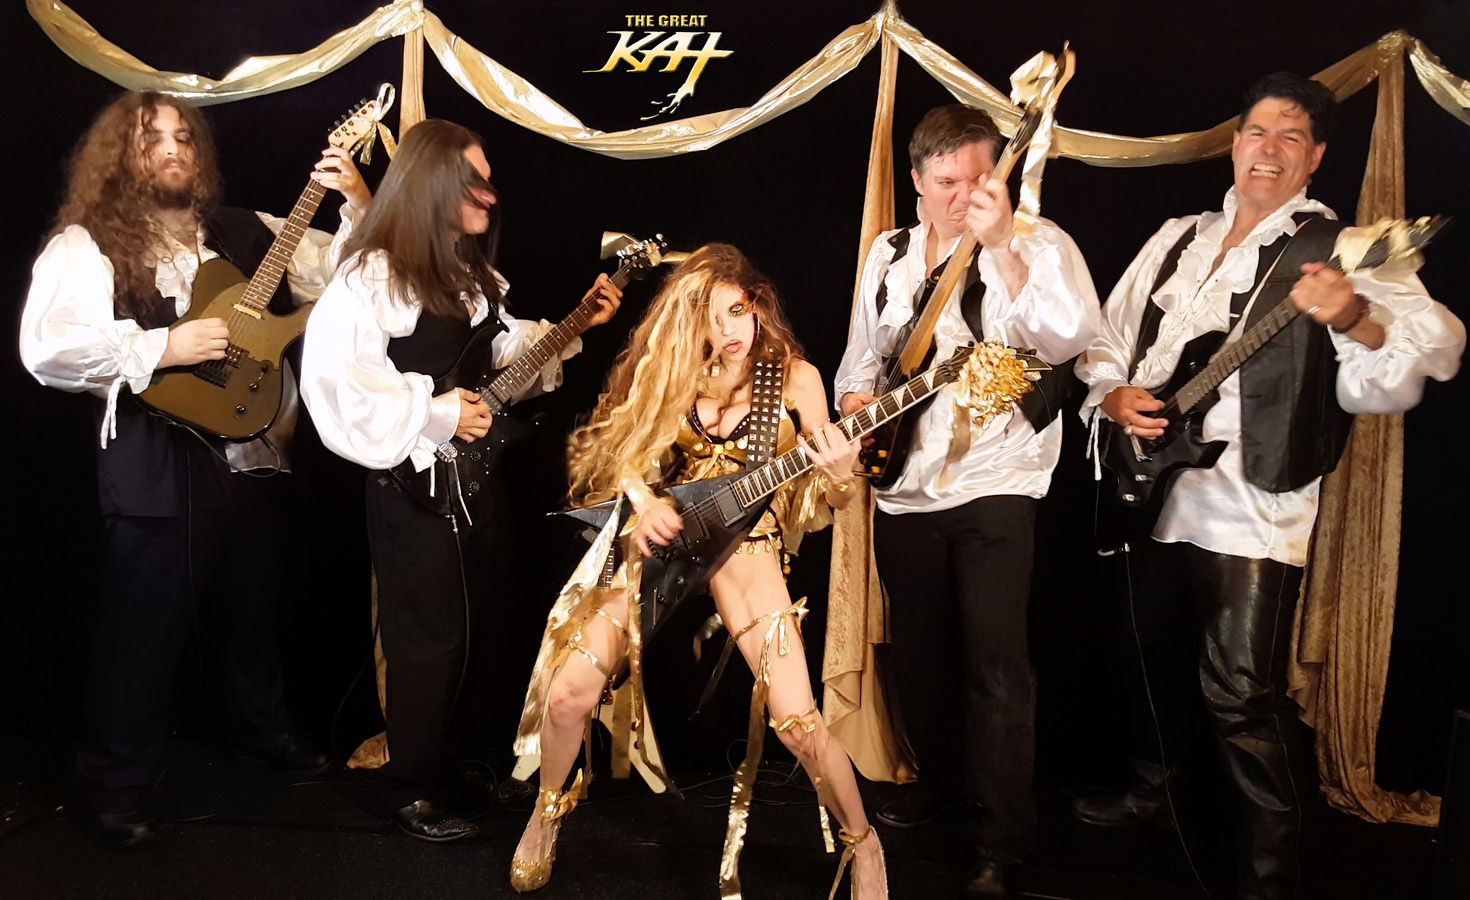 """THE GREAT KAT CLASSICAL GODDESS SHREDS with her HUNK BAND!  From The Great Kat's LISZT'S """"HUNGARIAN RHAPSODY #2"""" MUSIC VIDEO!!!!"""